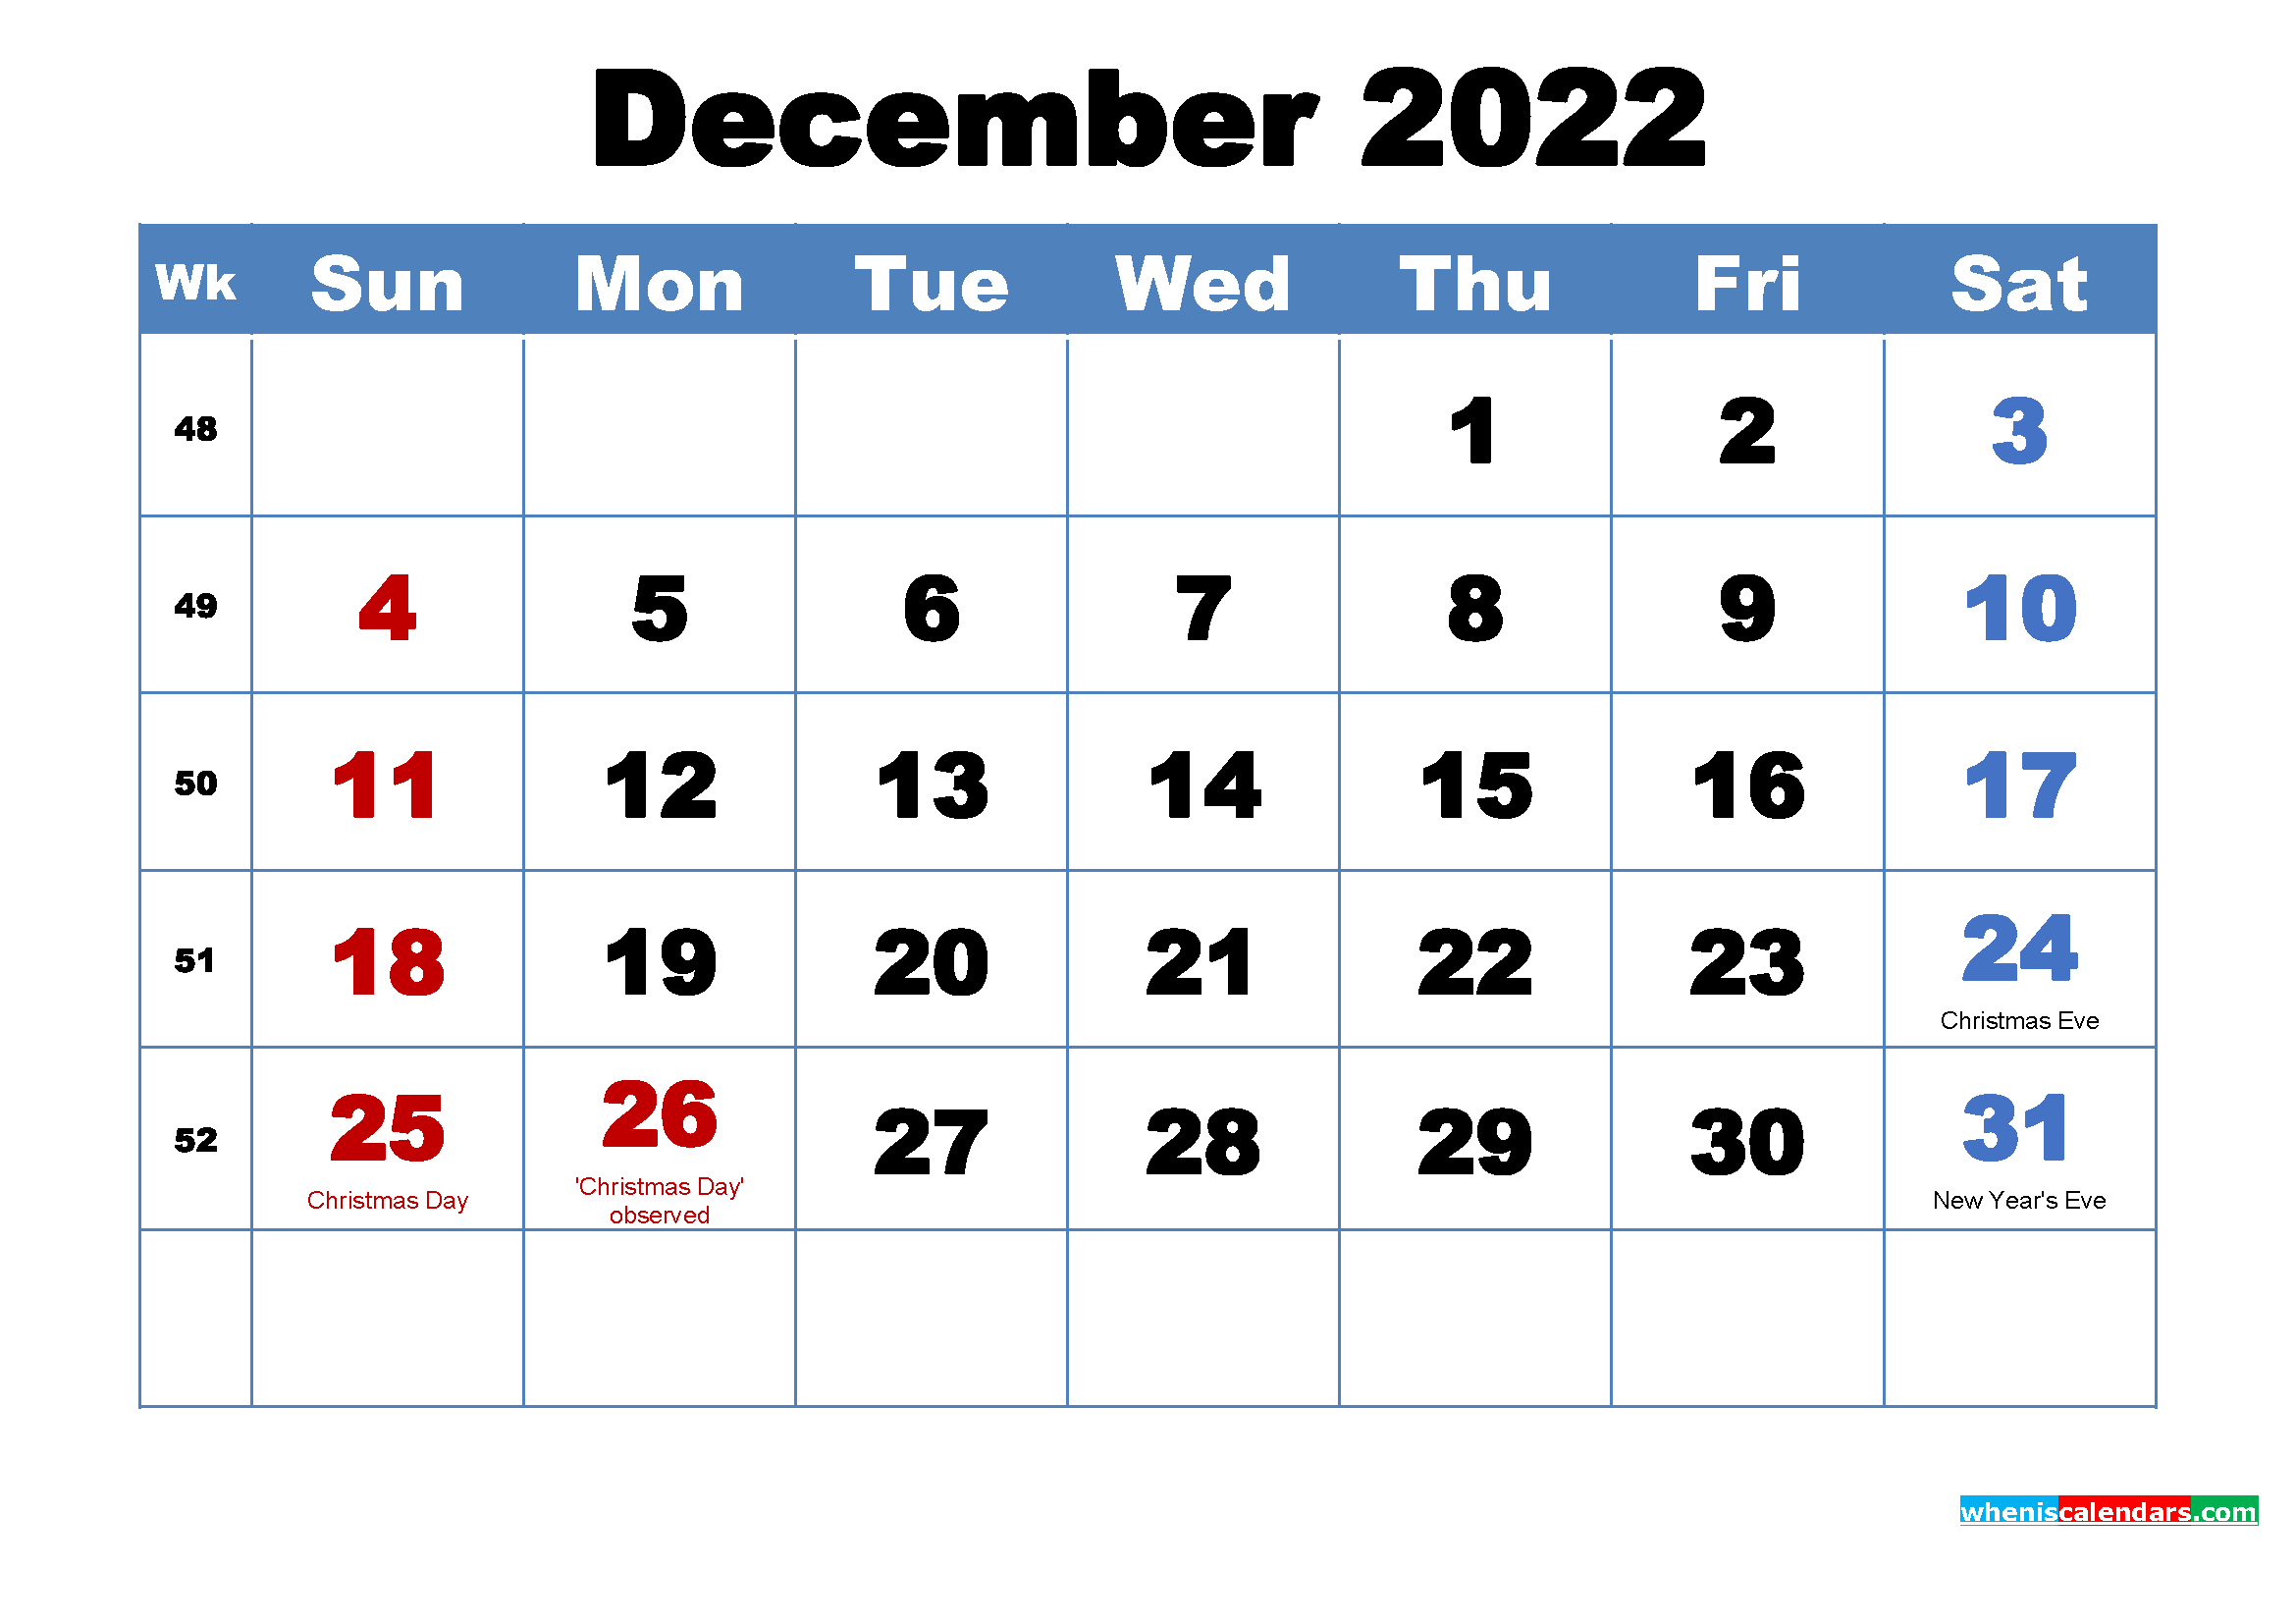 December 2022 Calendar Wallpaper Free Download